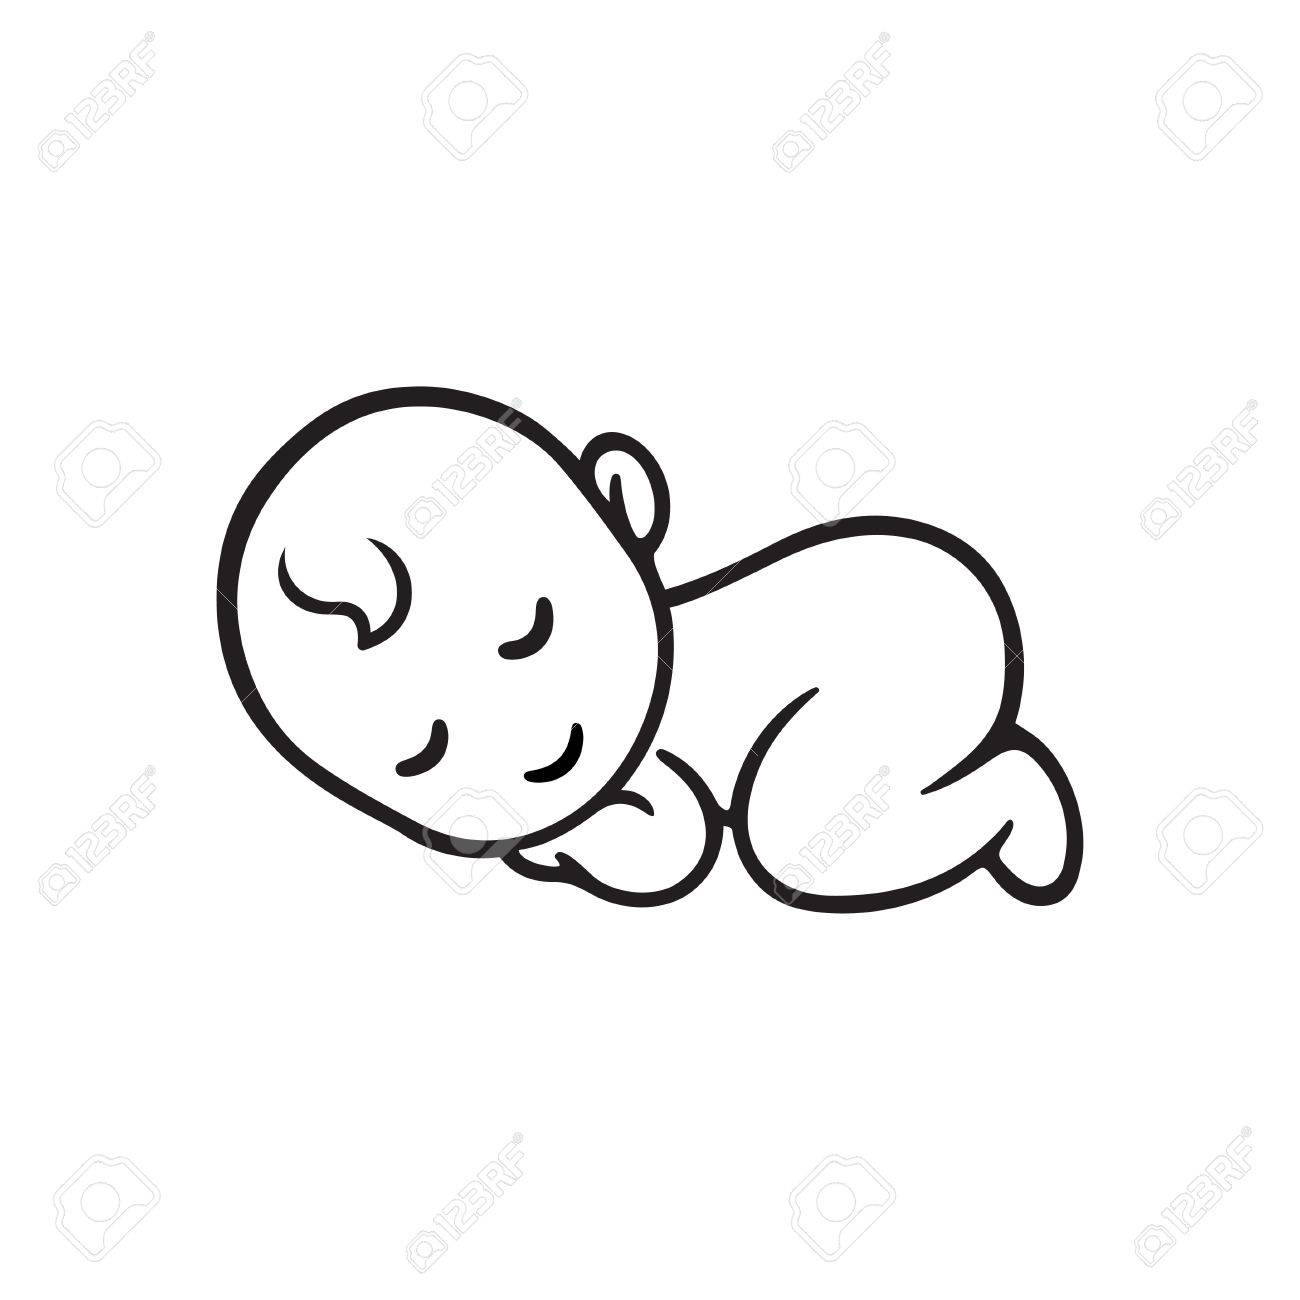 Sleeping baby silhouette, stylized line. Cute simple vector illustration. - 68834647